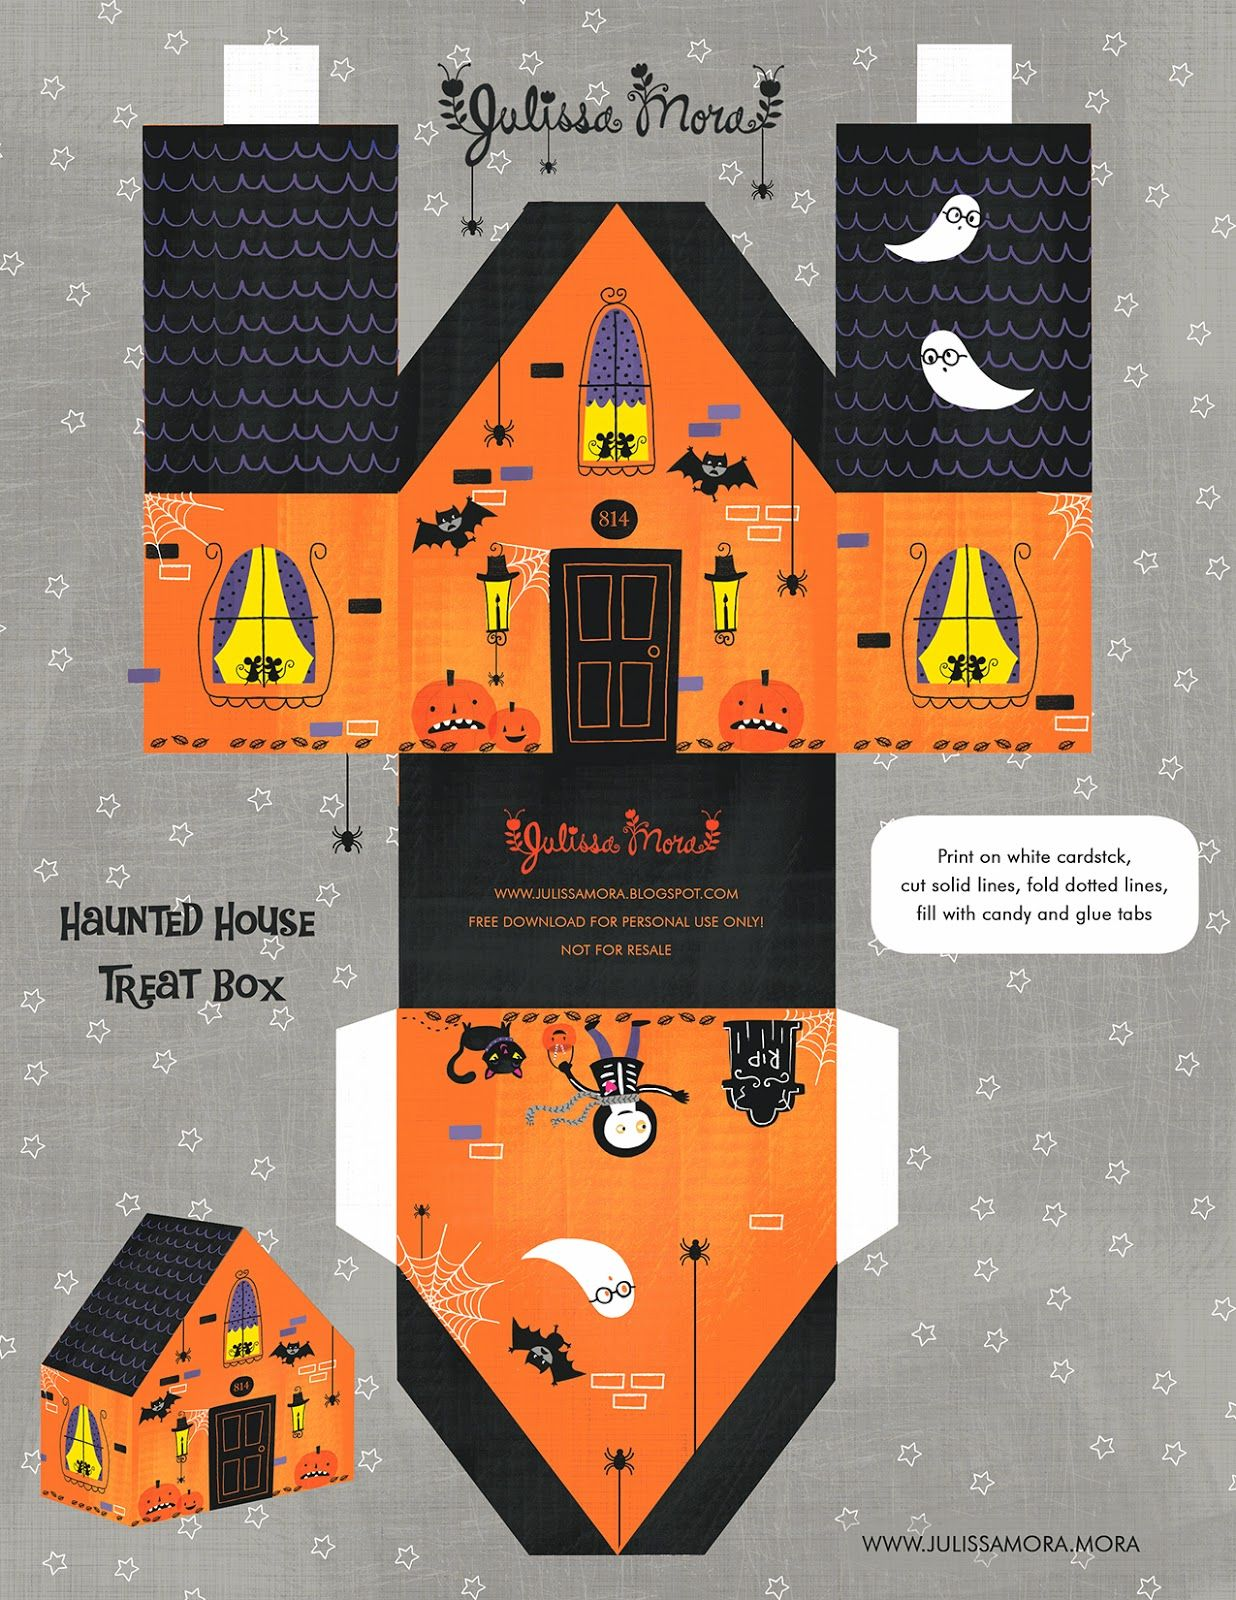 Agile image intended for haunted house printable